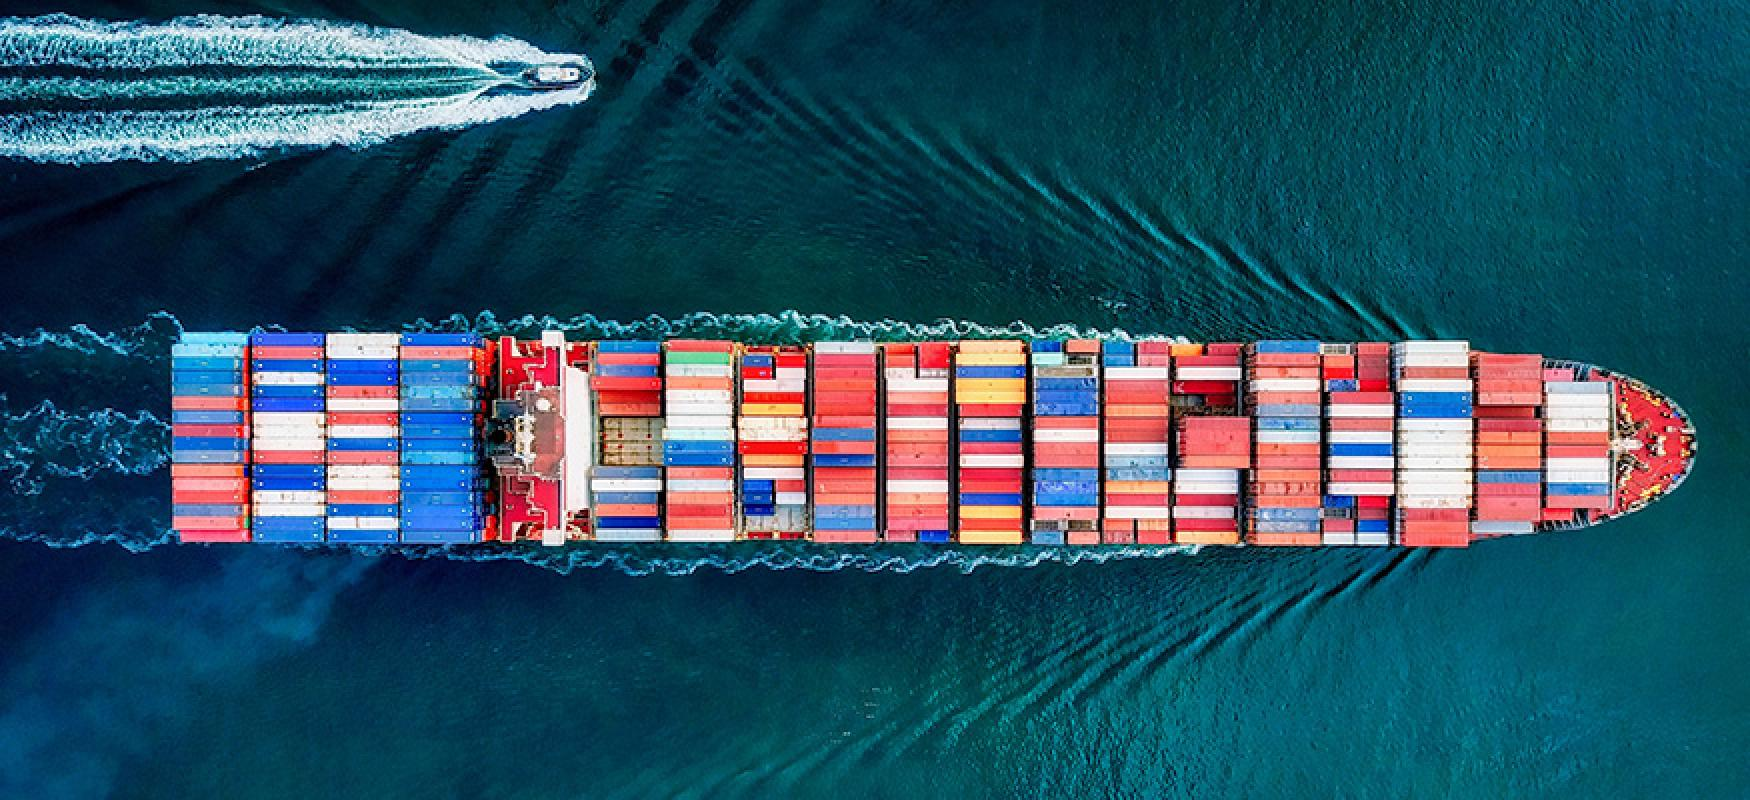 Container ship seen from above.